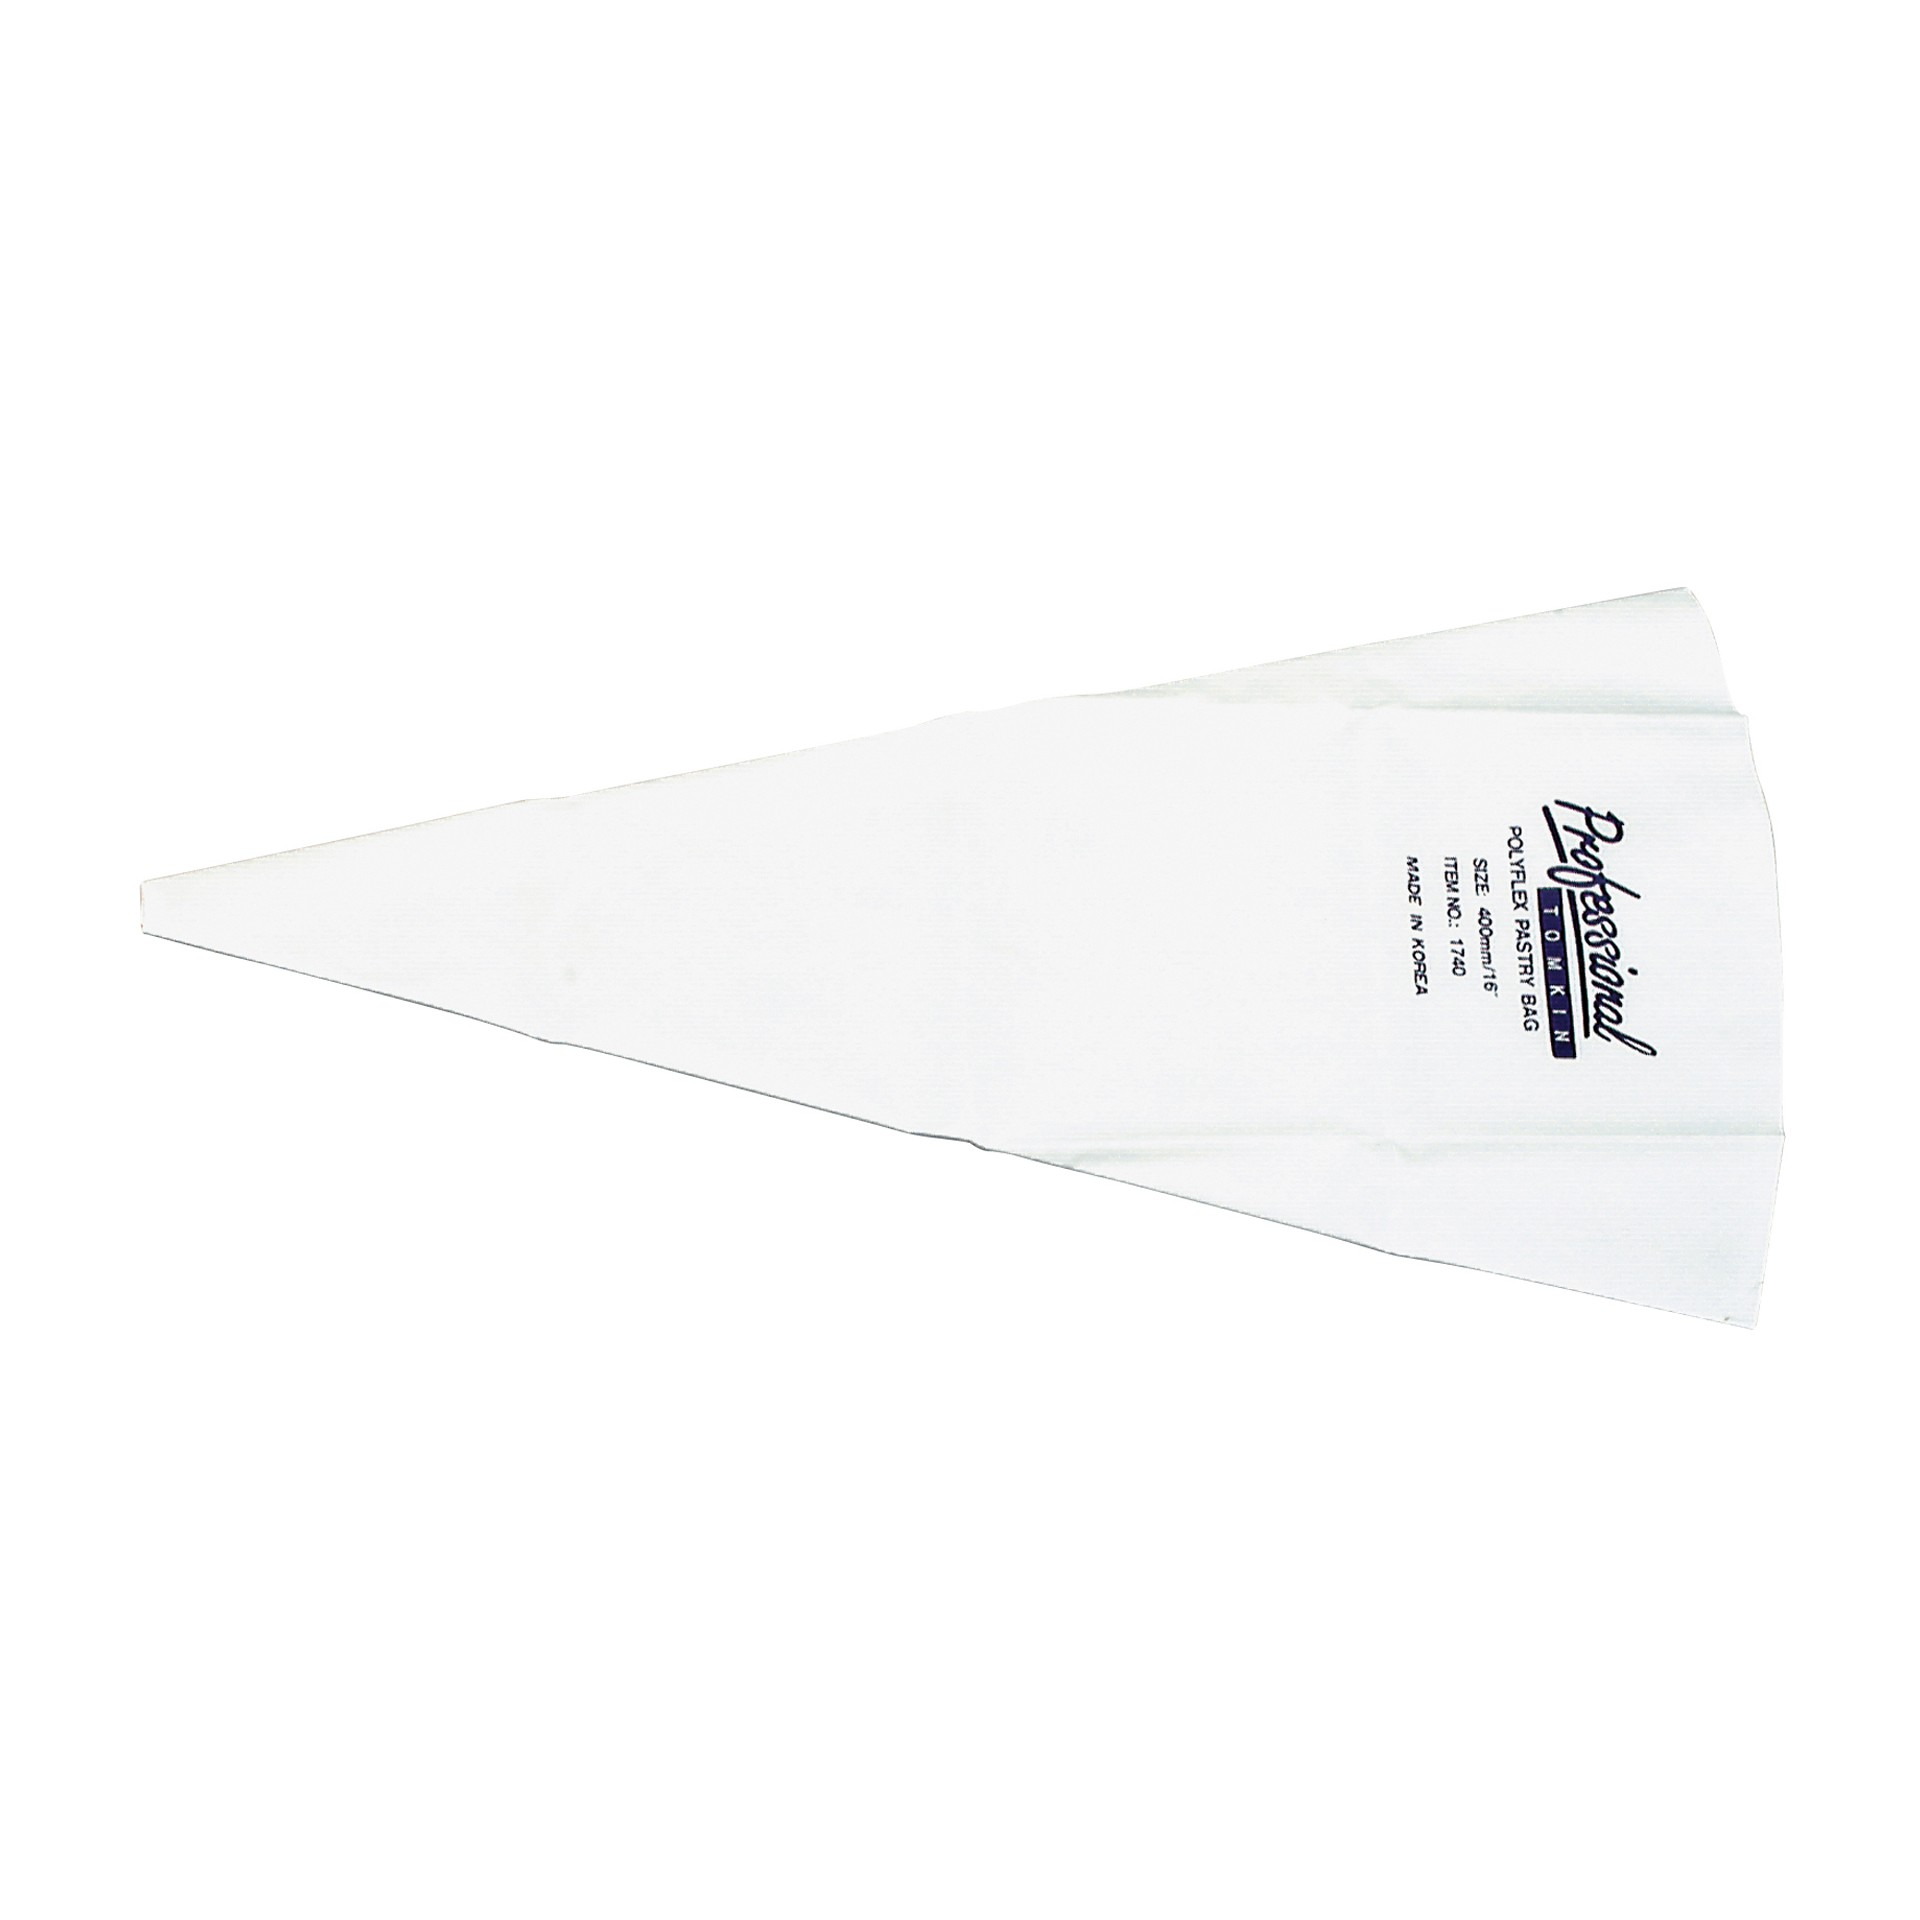 Chef Inox Polyflex Pastry Bag (HACCP Approved) - 400mm